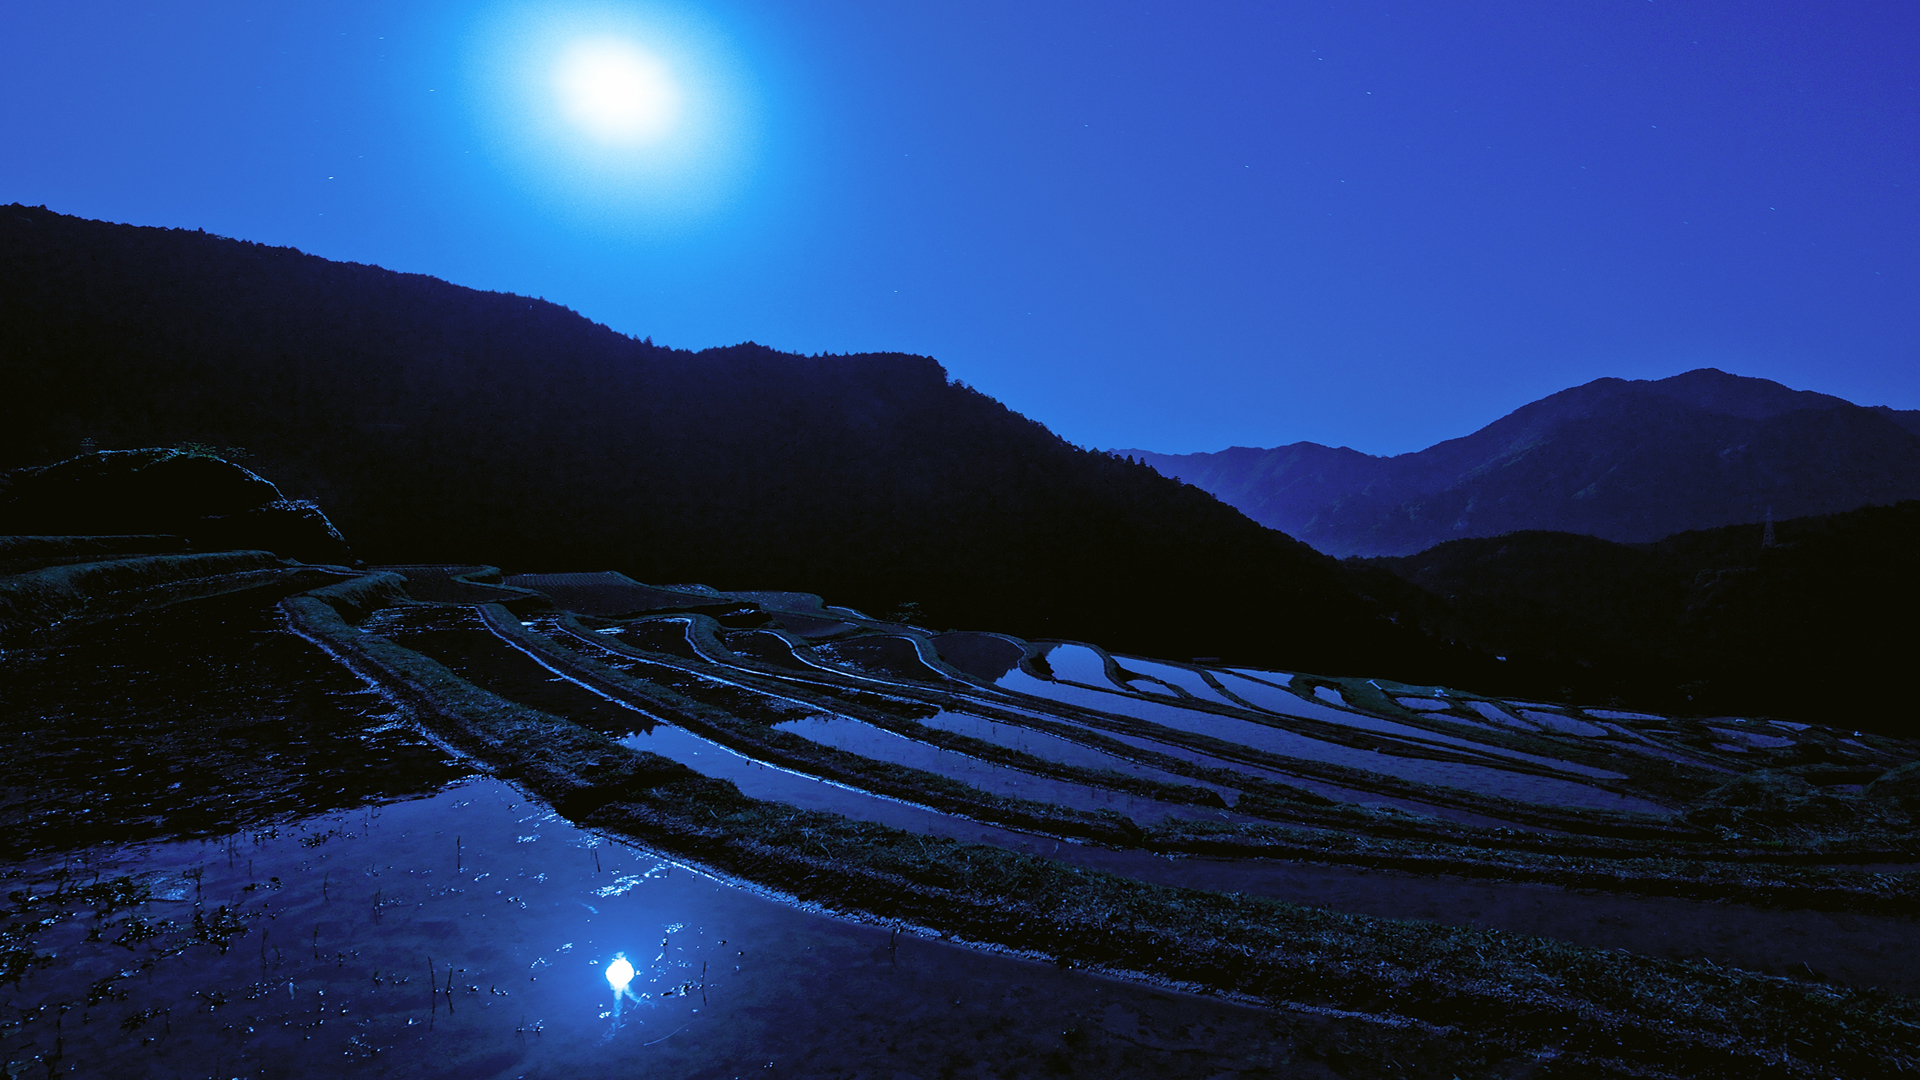 blue, moon, mountains, nature, night, peaceful, reflection, sky, water 1533